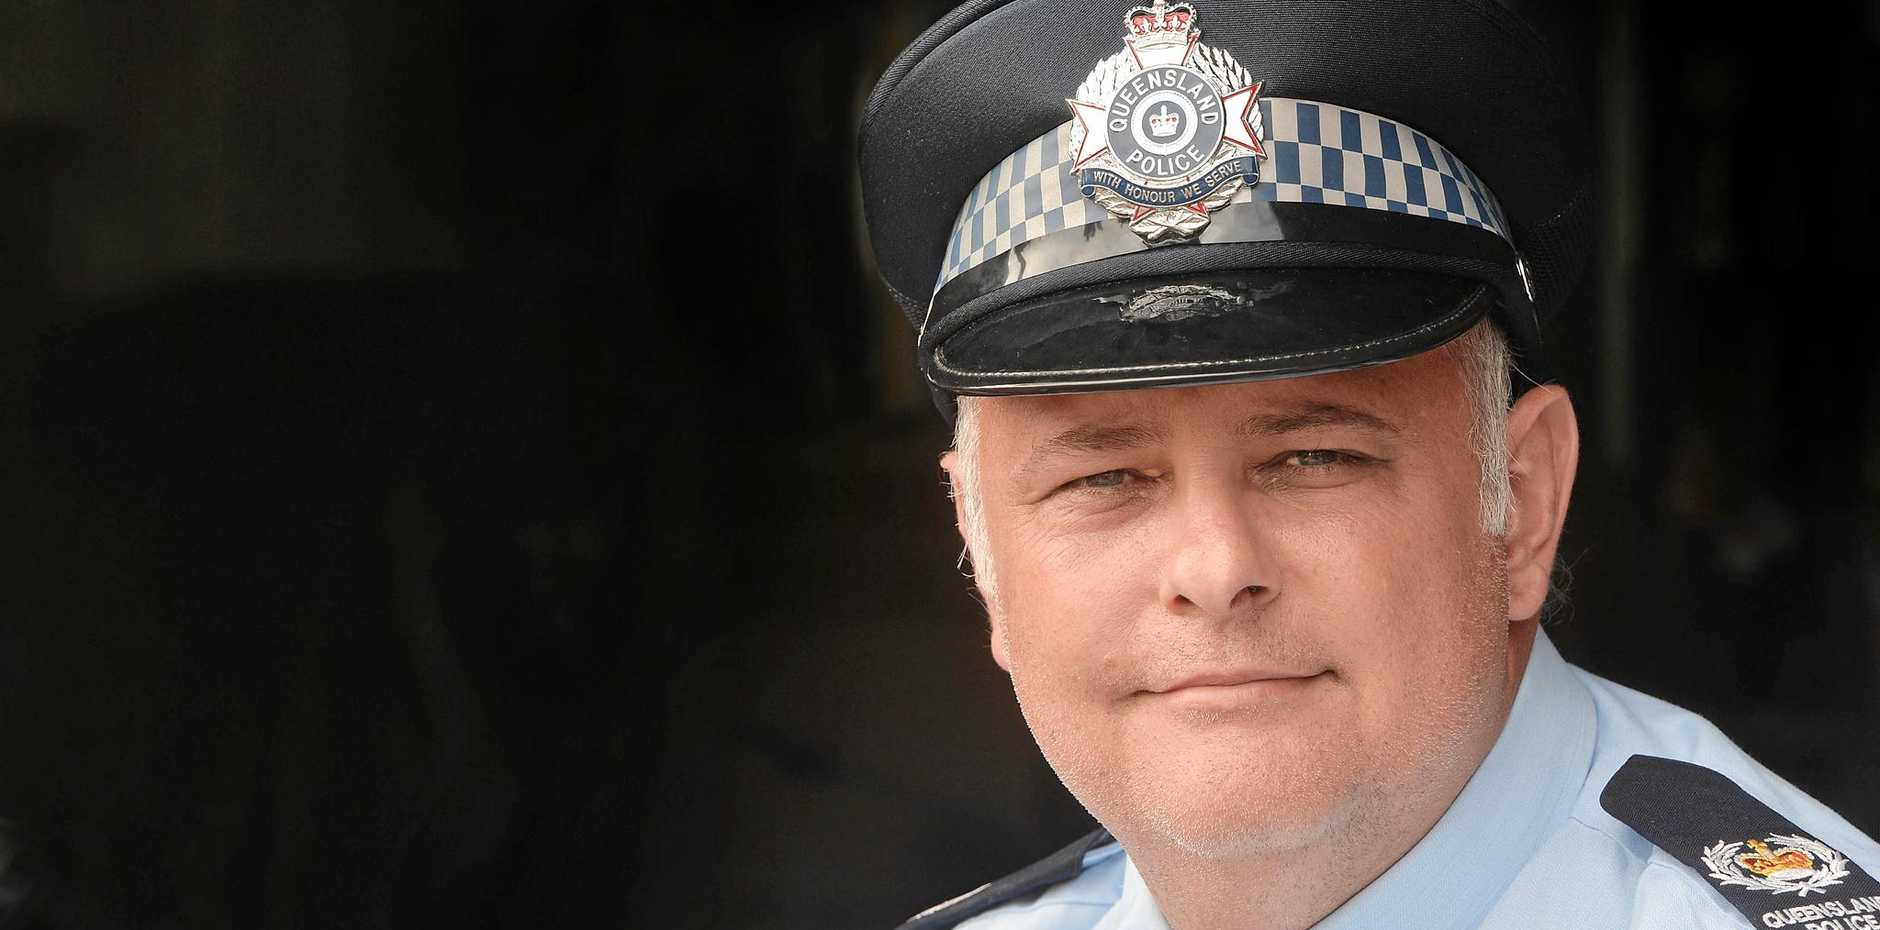 Senior Sergeant Adrian Rieck, officer-in-charge of the Mackay Northern Beaches police, attended the aftermath of a horrific explosion 30km south of Charleville about 10pm on September 5, 2014, rescuing firefighters and civilians with colleagues. The blast was heard about 30km away.